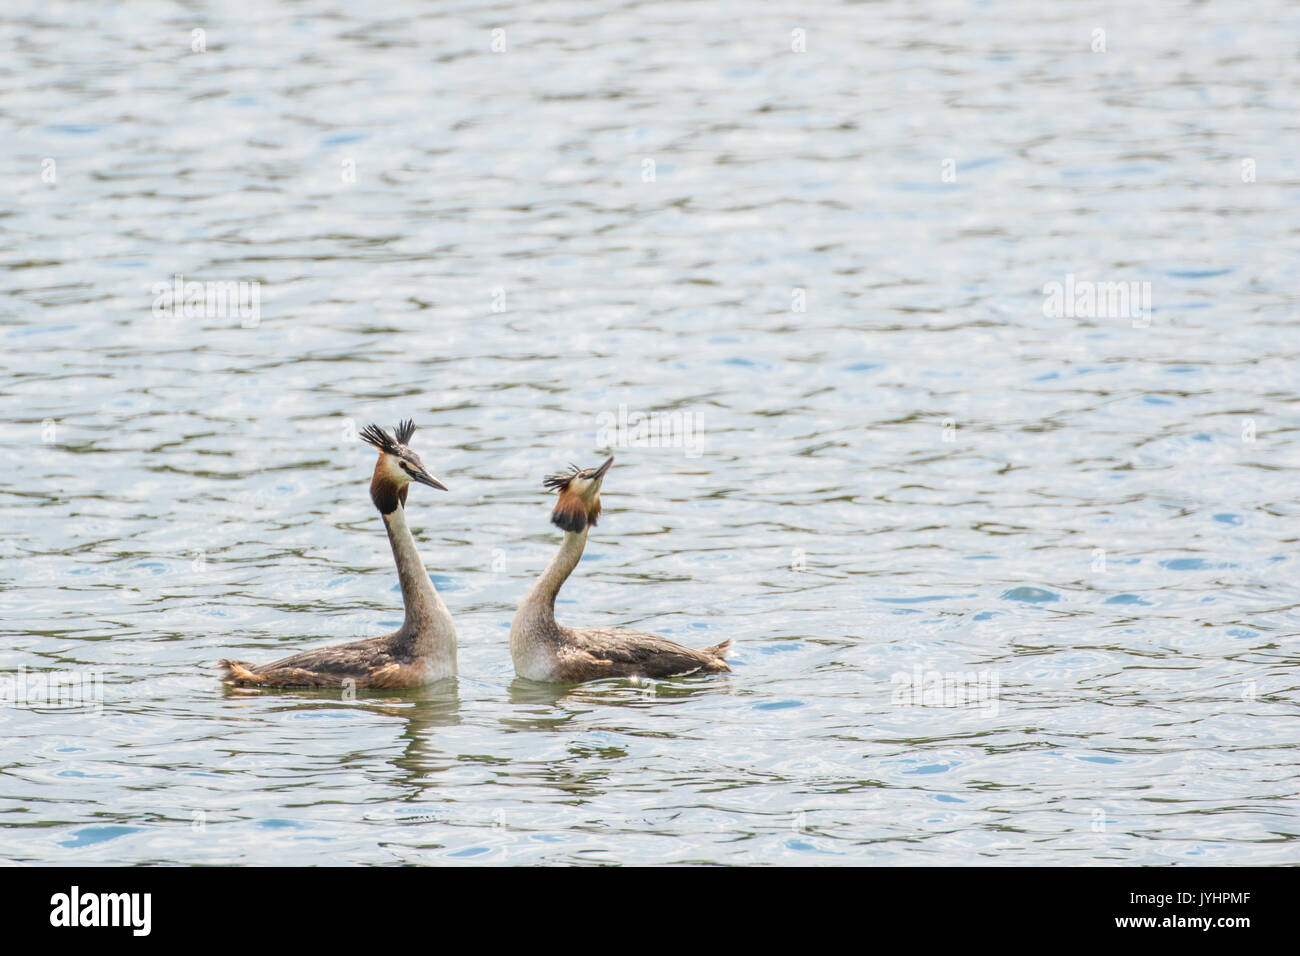 Two Great Crested Grebes Swimming on a Lake. - Stock Image